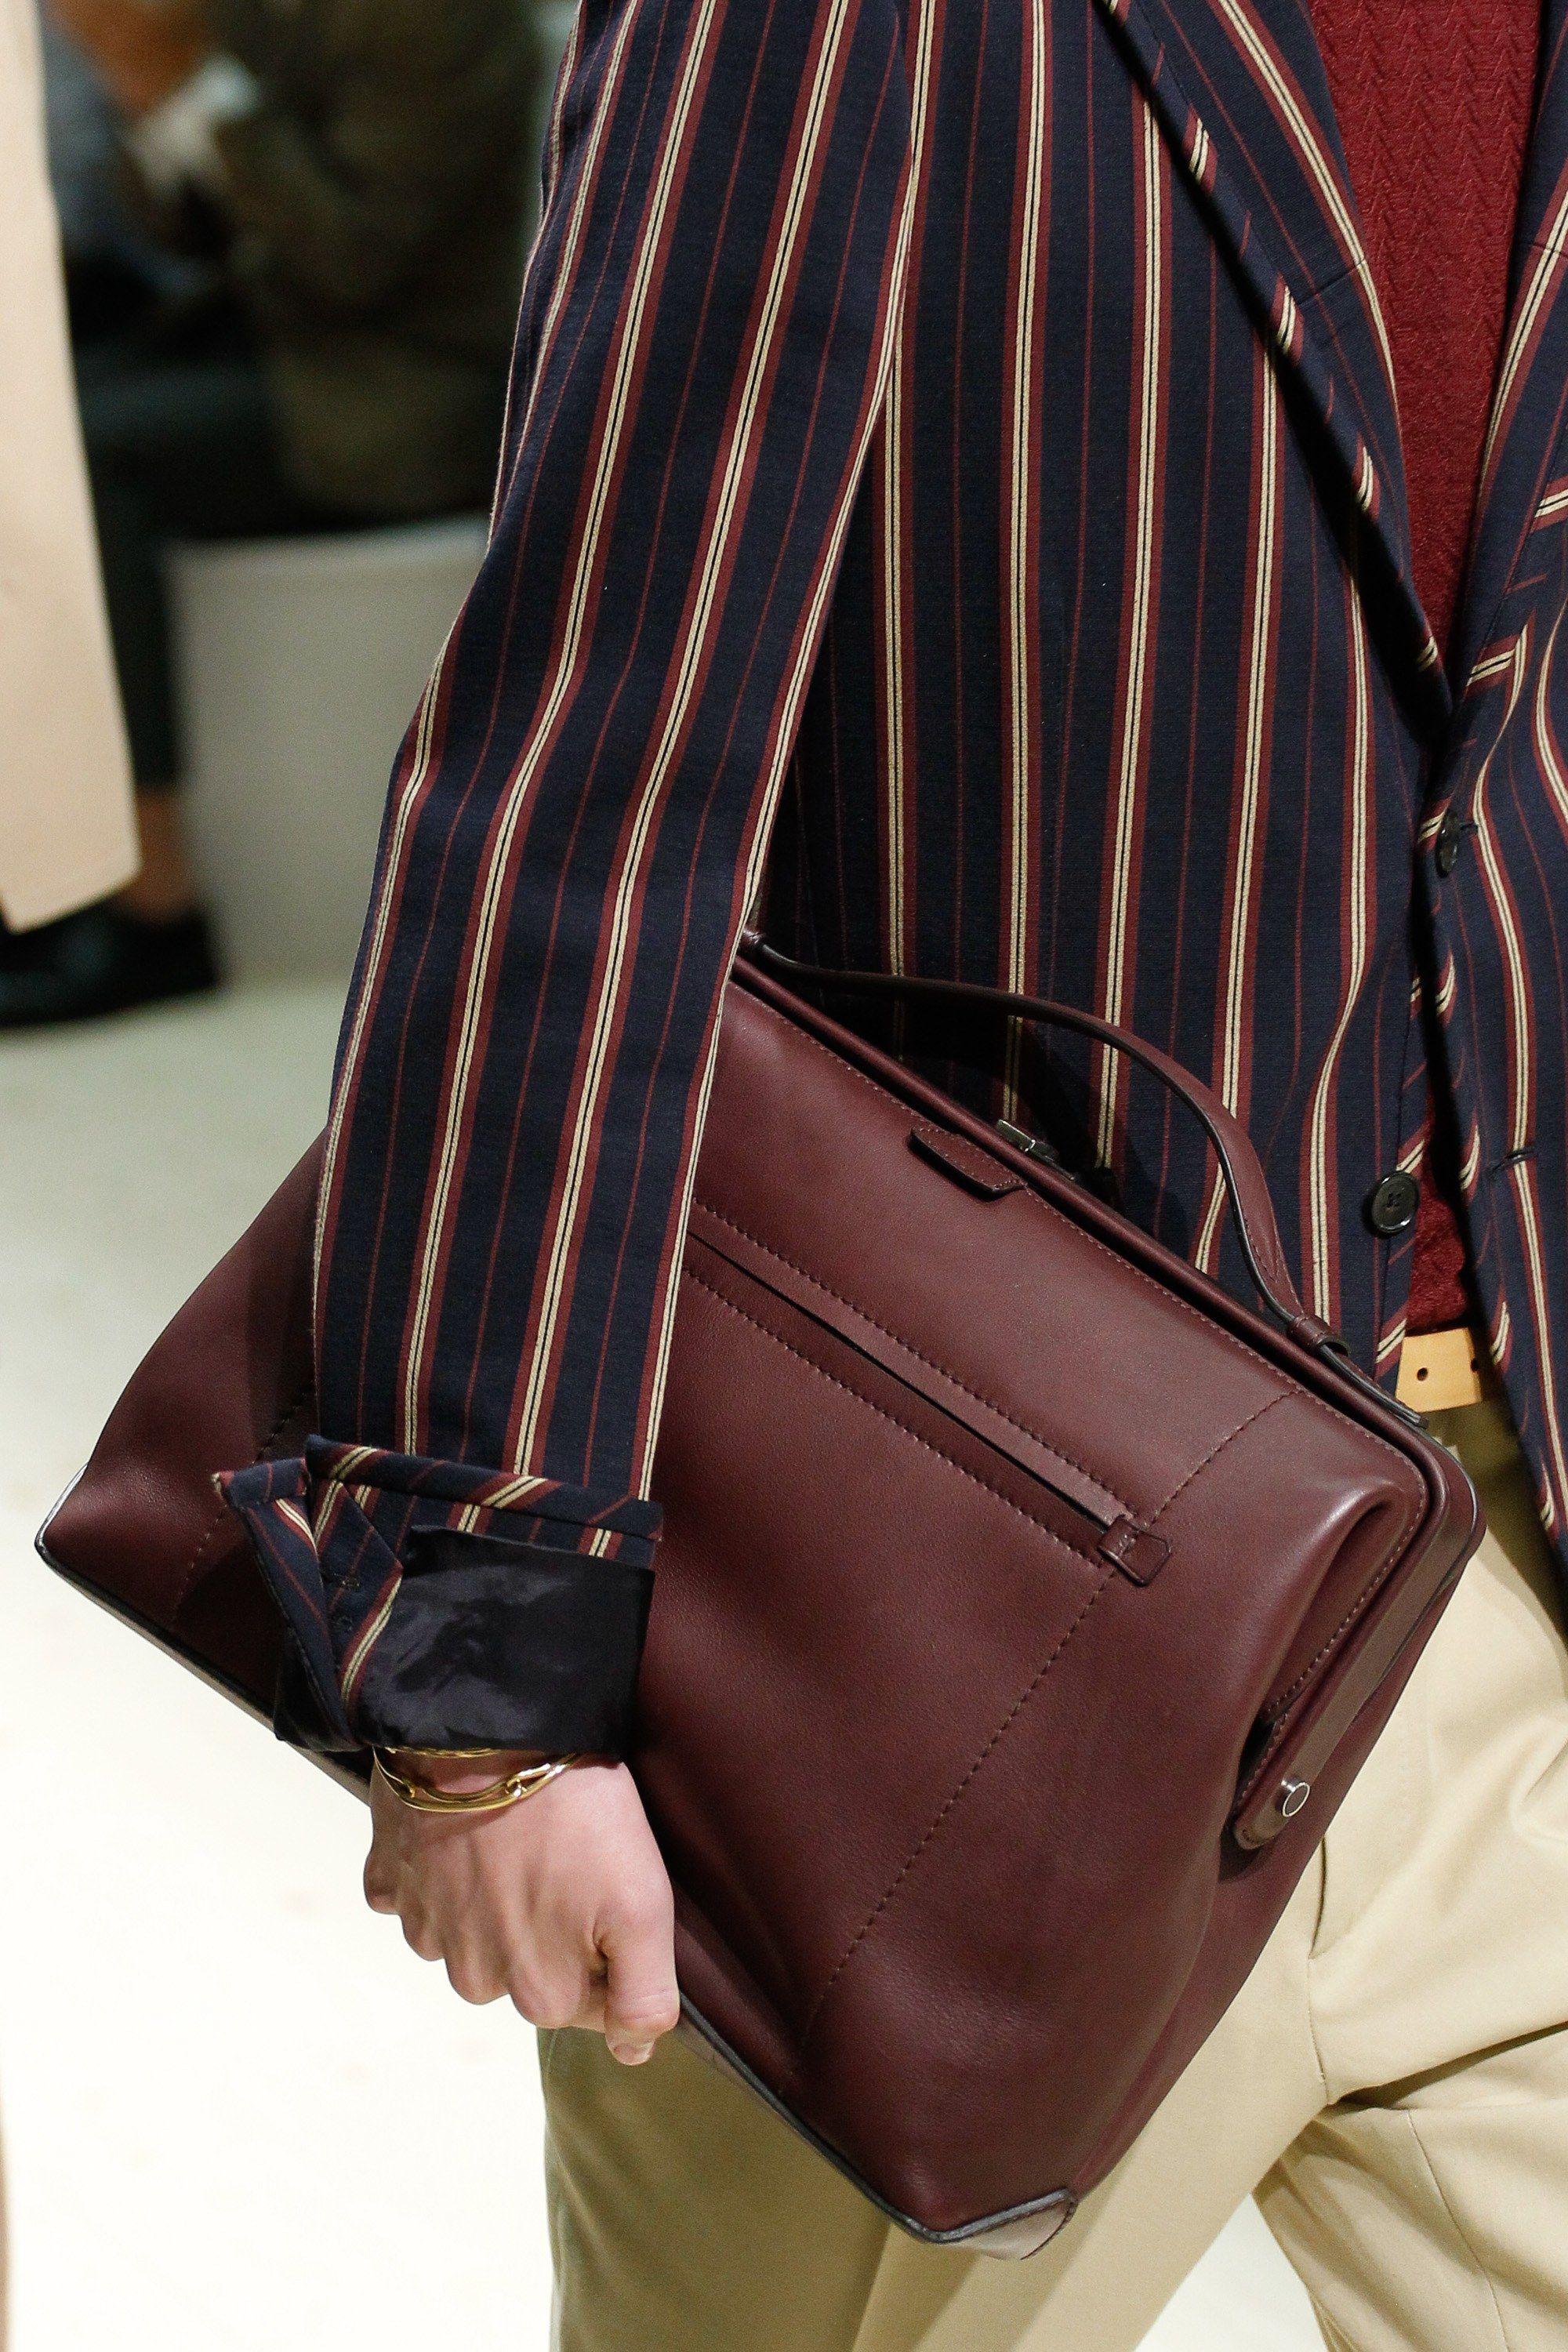 53dece11ca Salvatore Ferragamo Spring 2018 Menswear Accessories Photos - Vogue